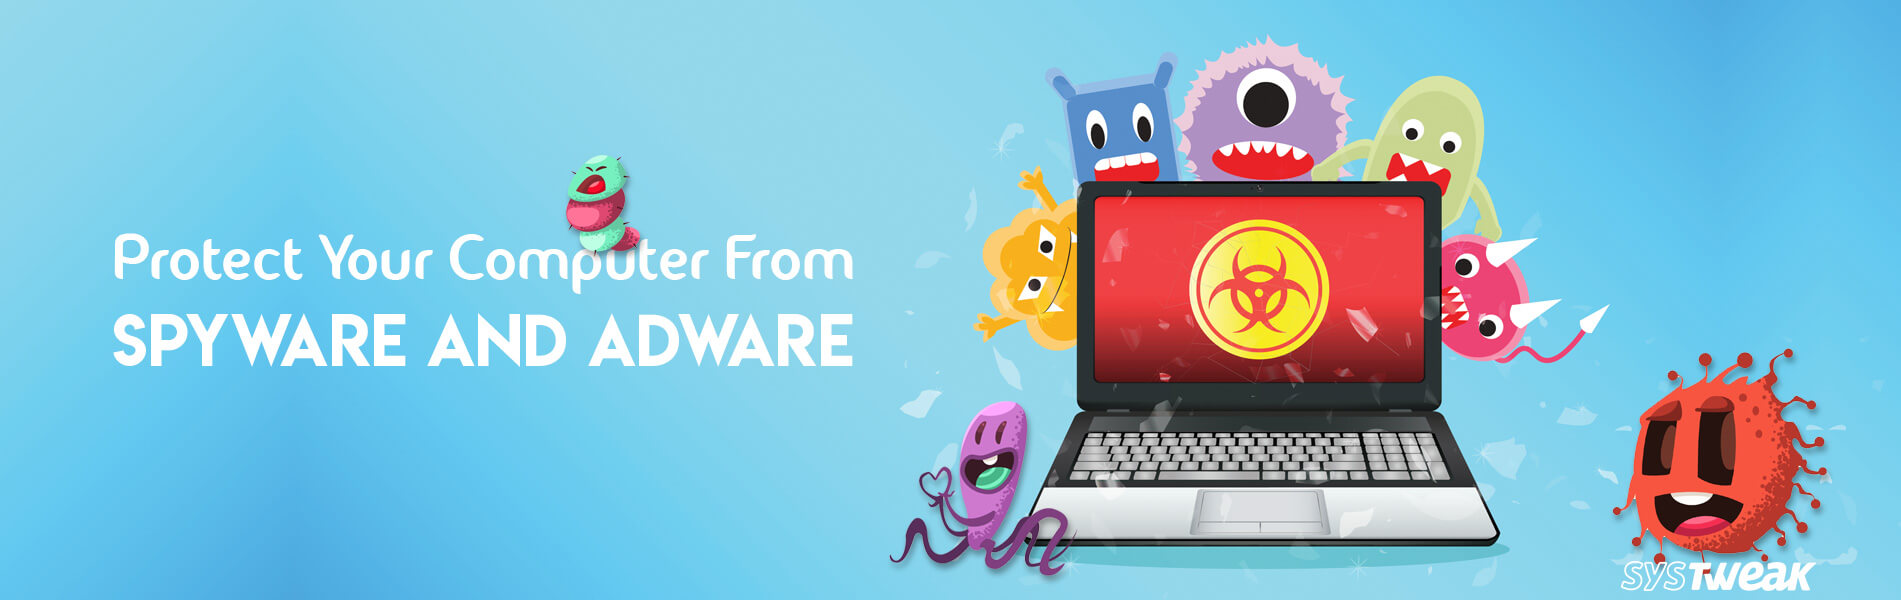 How To Prevent Spyware And Adware?